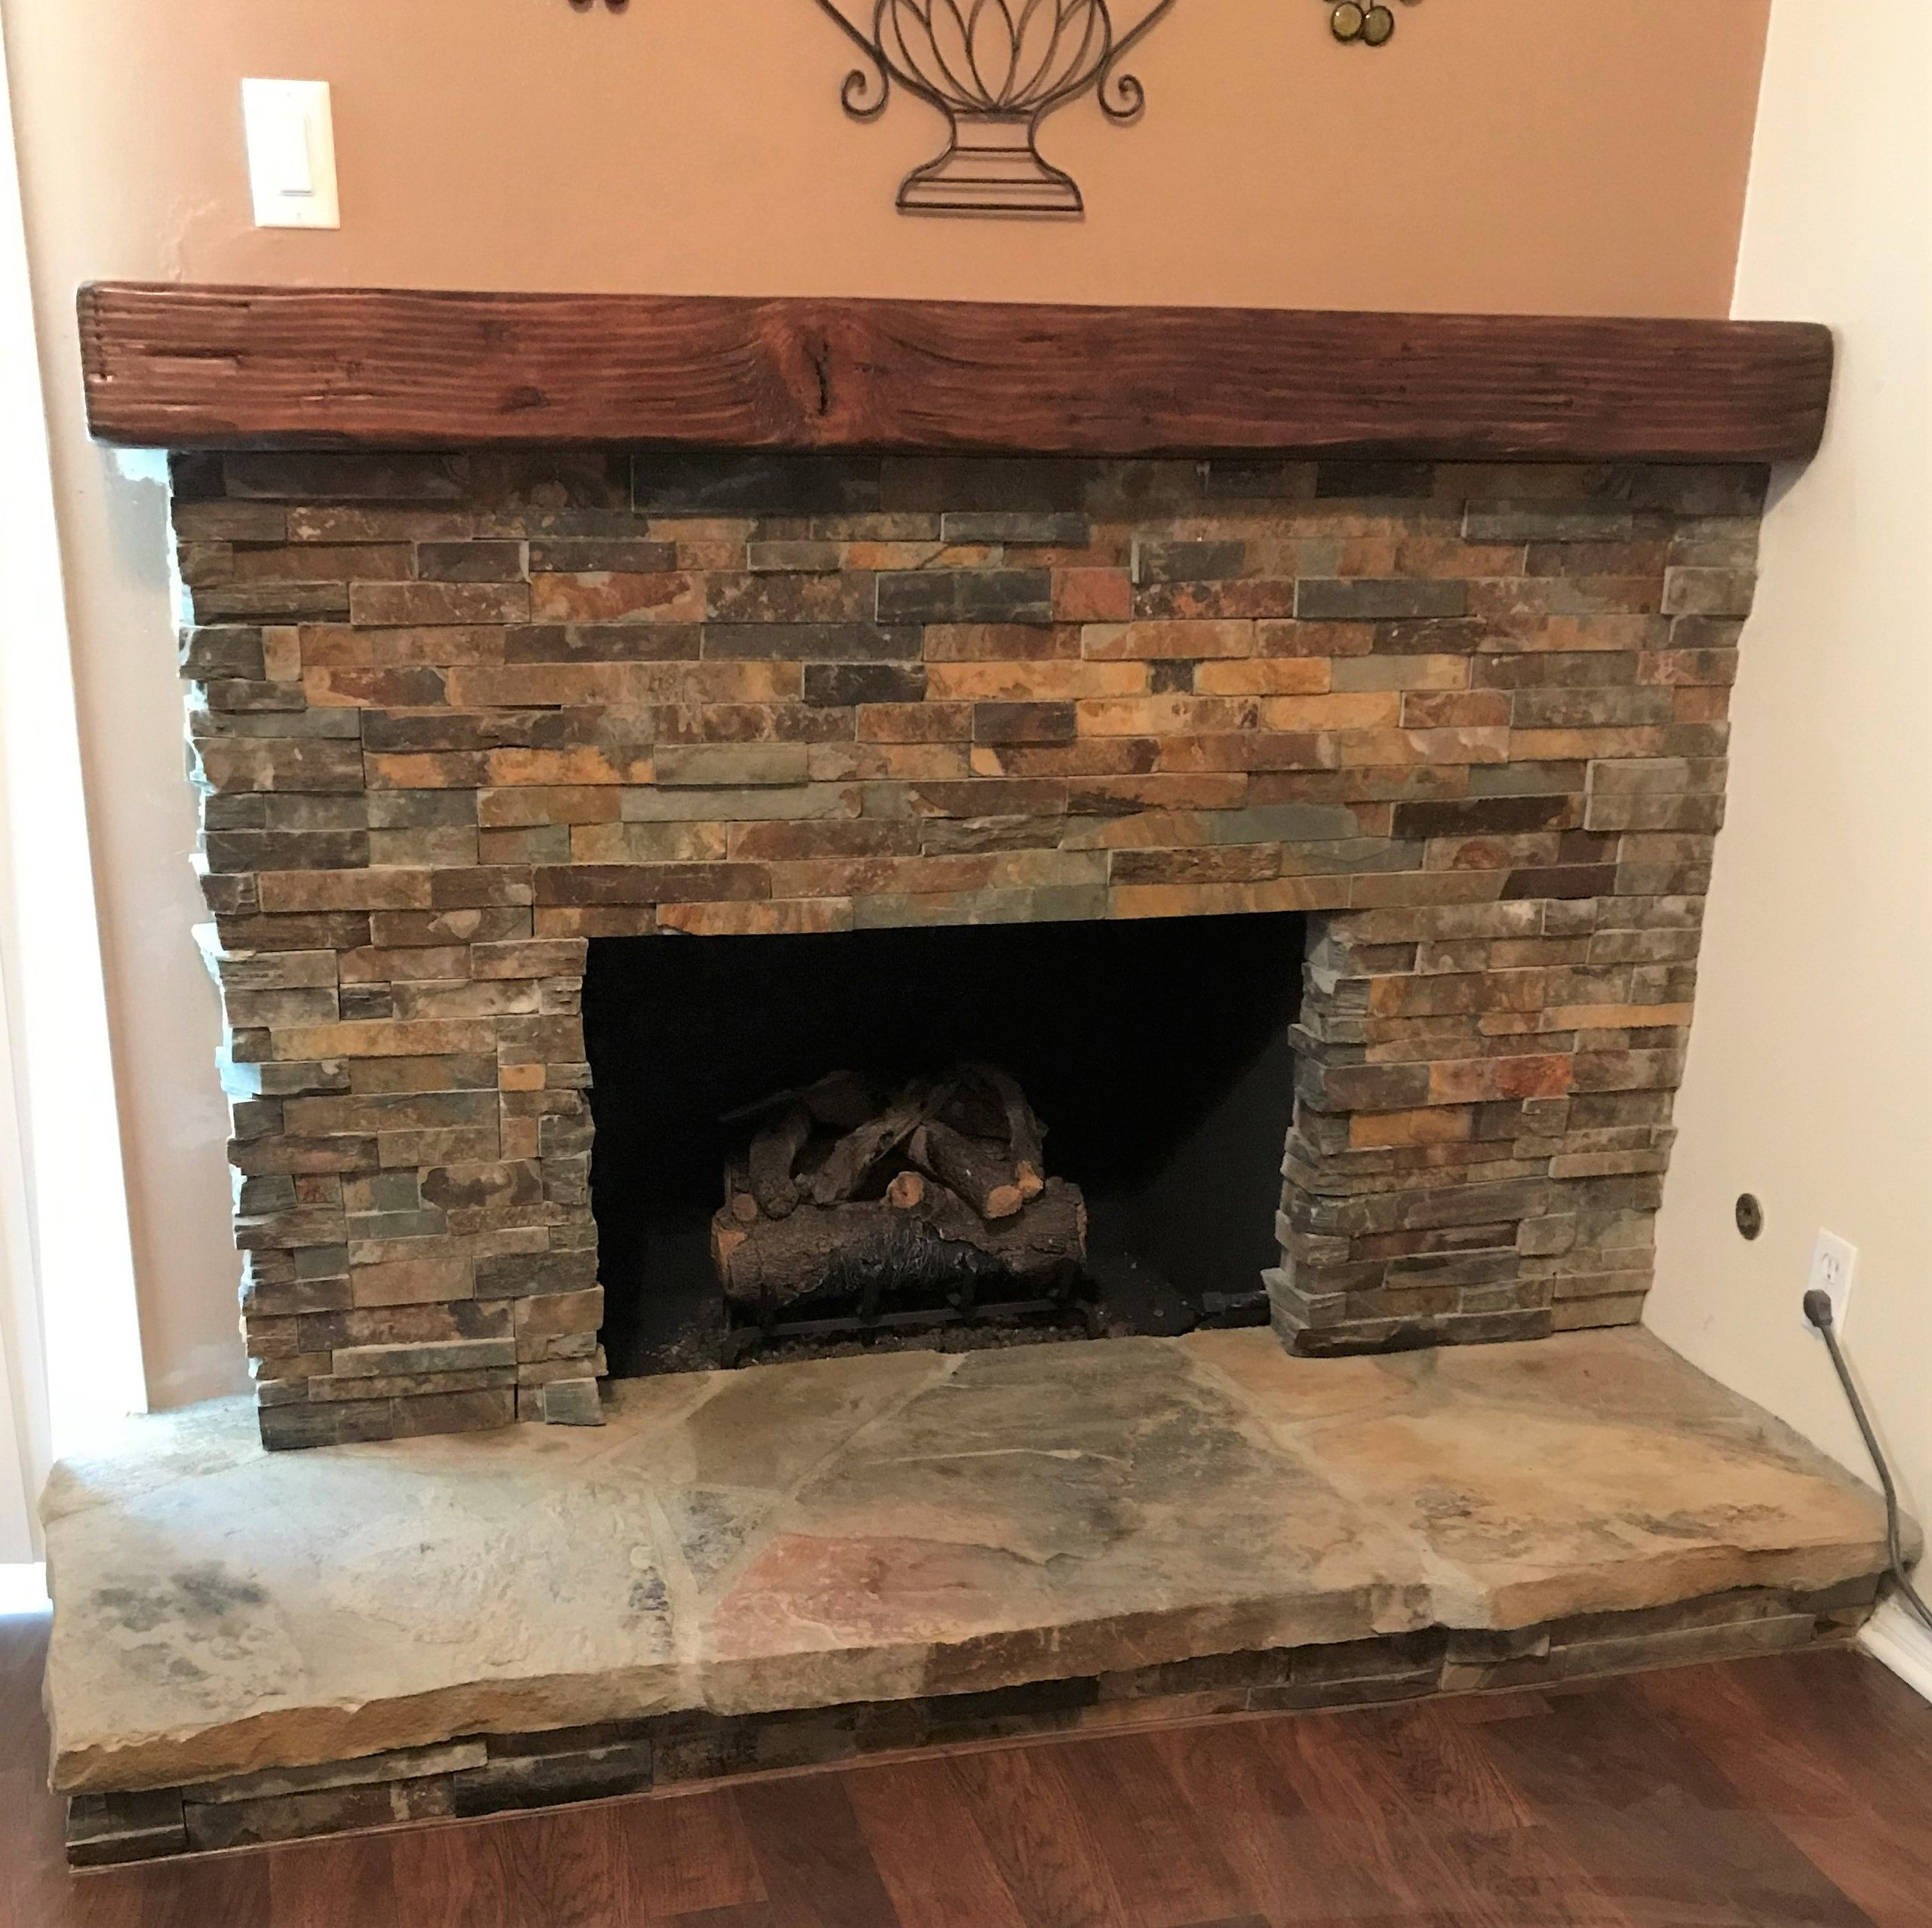 Reclaimed Wood Mantel In Tudor Brown Wood Fireplace Mantel Reclaimed Wood Mantel Wood Mantels